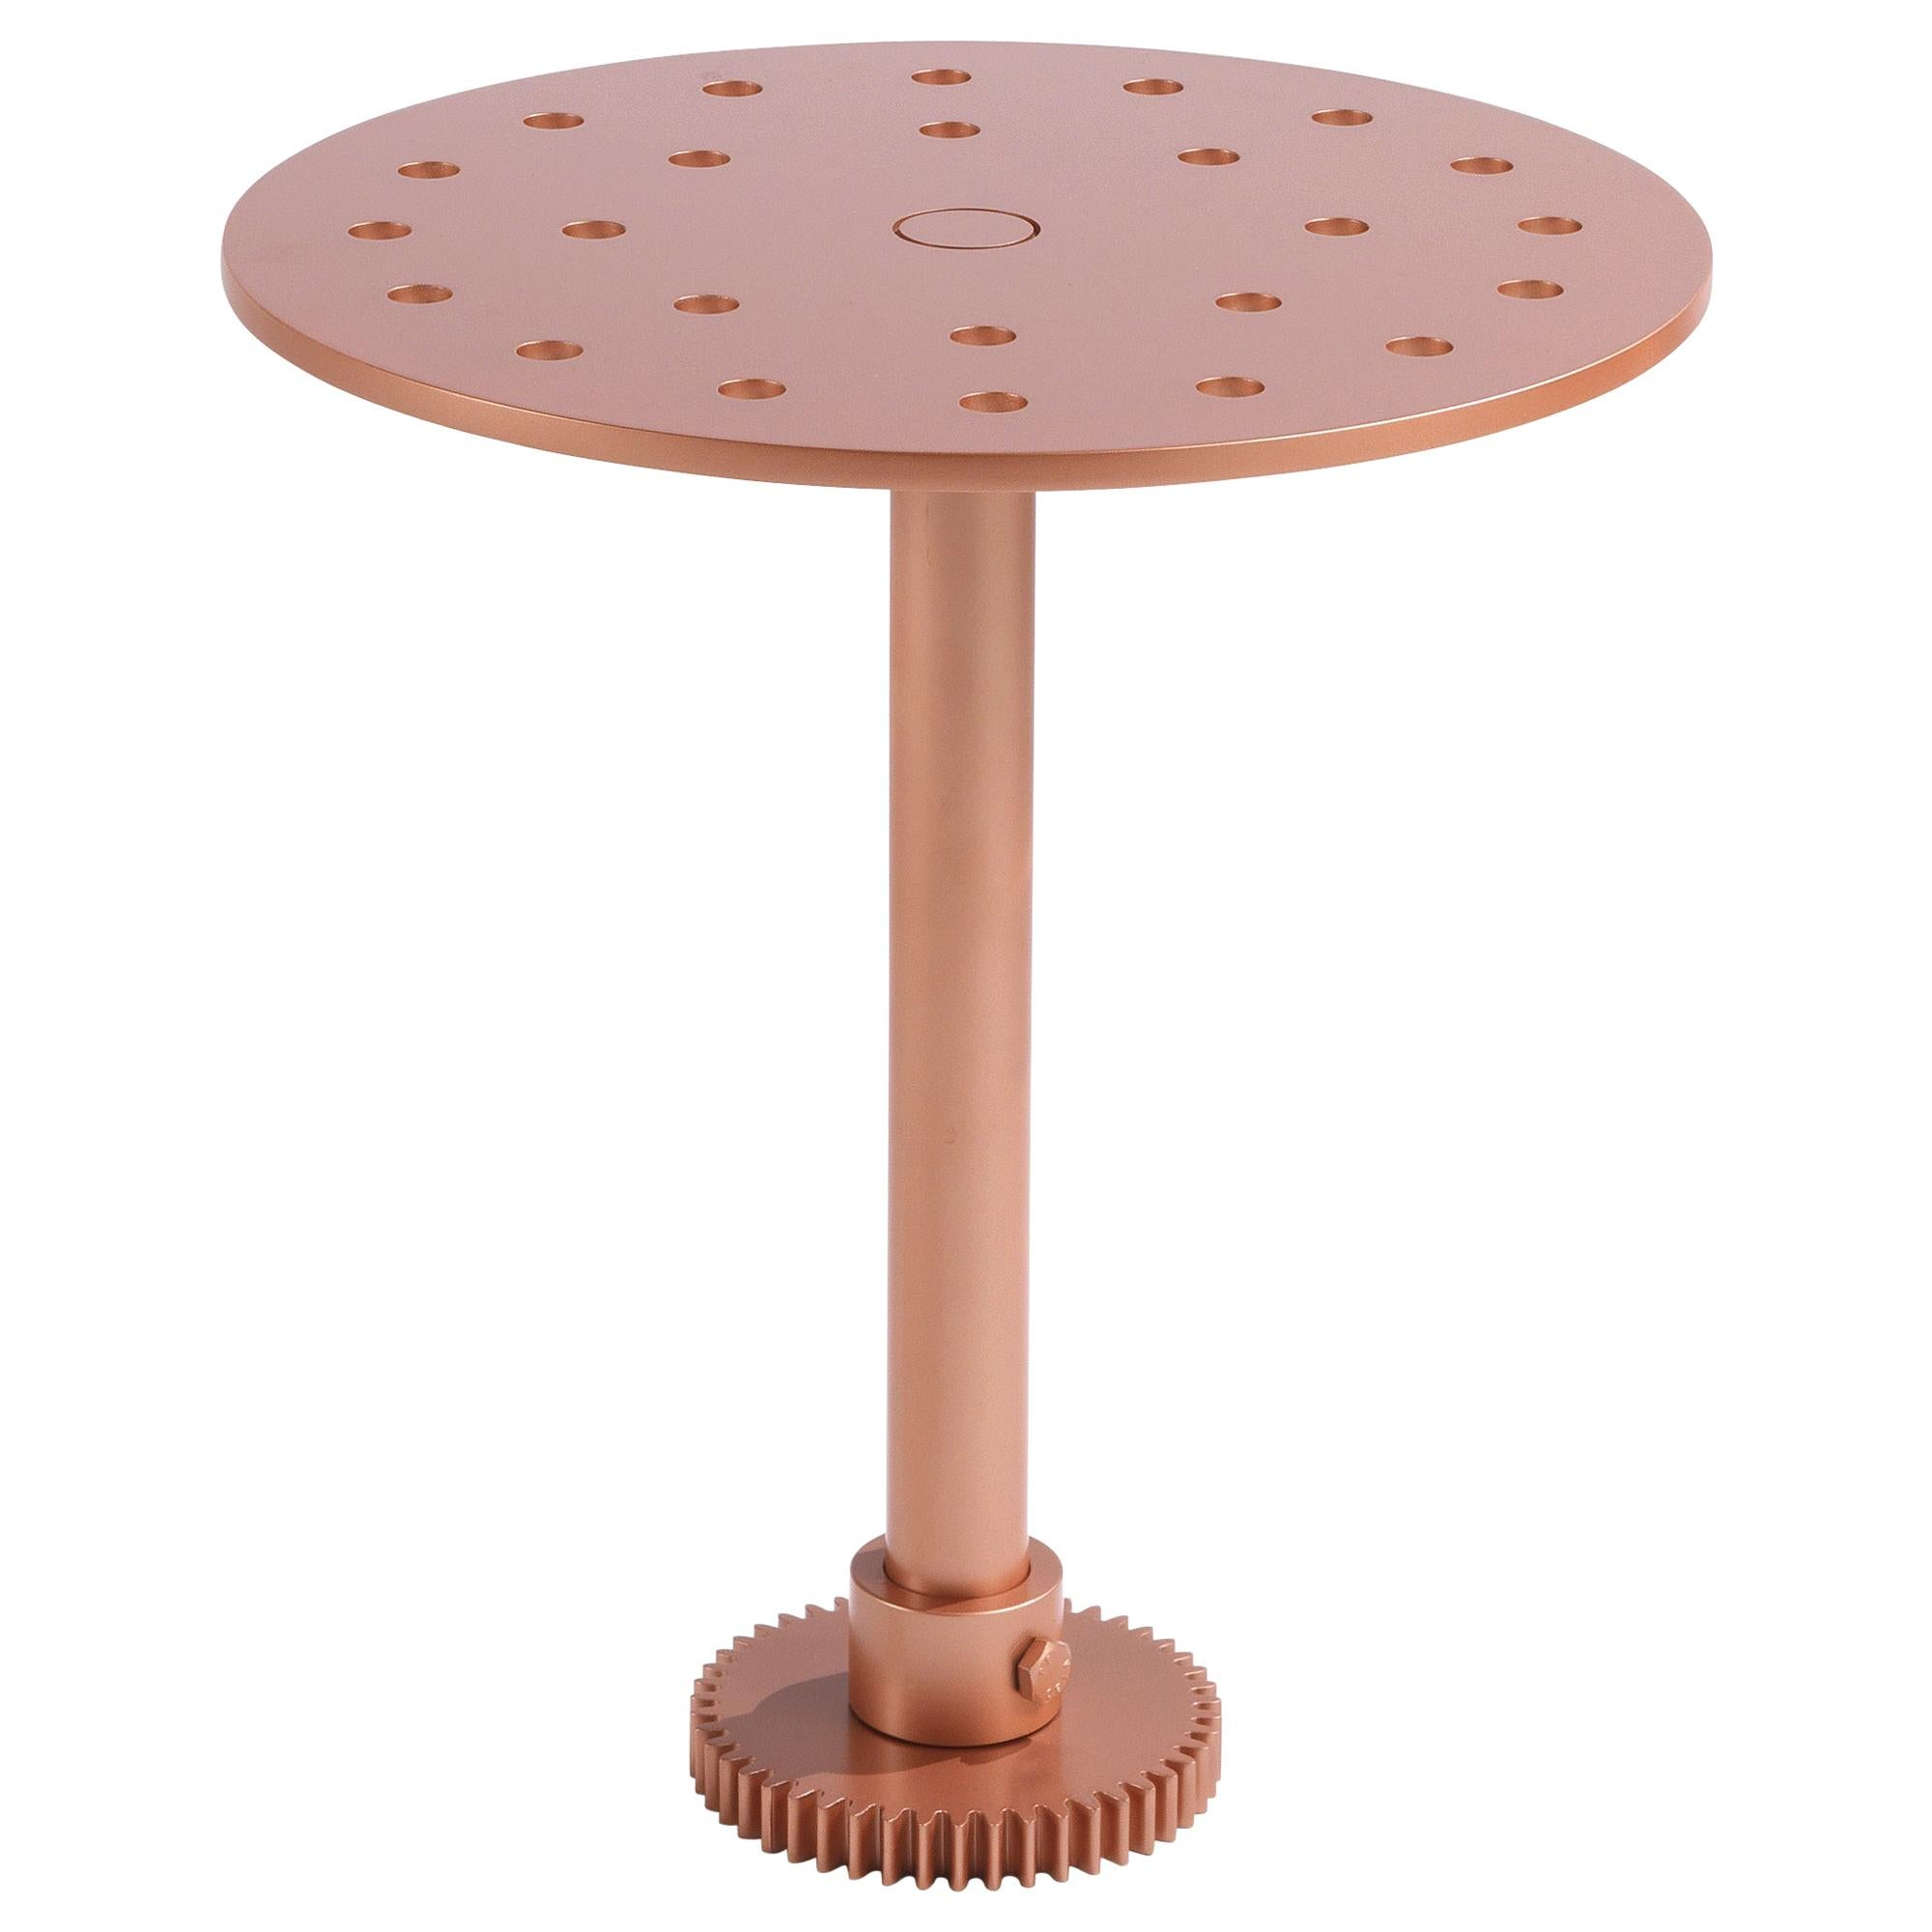 JCP Universe Maseen a Side Table by Samer Alameen